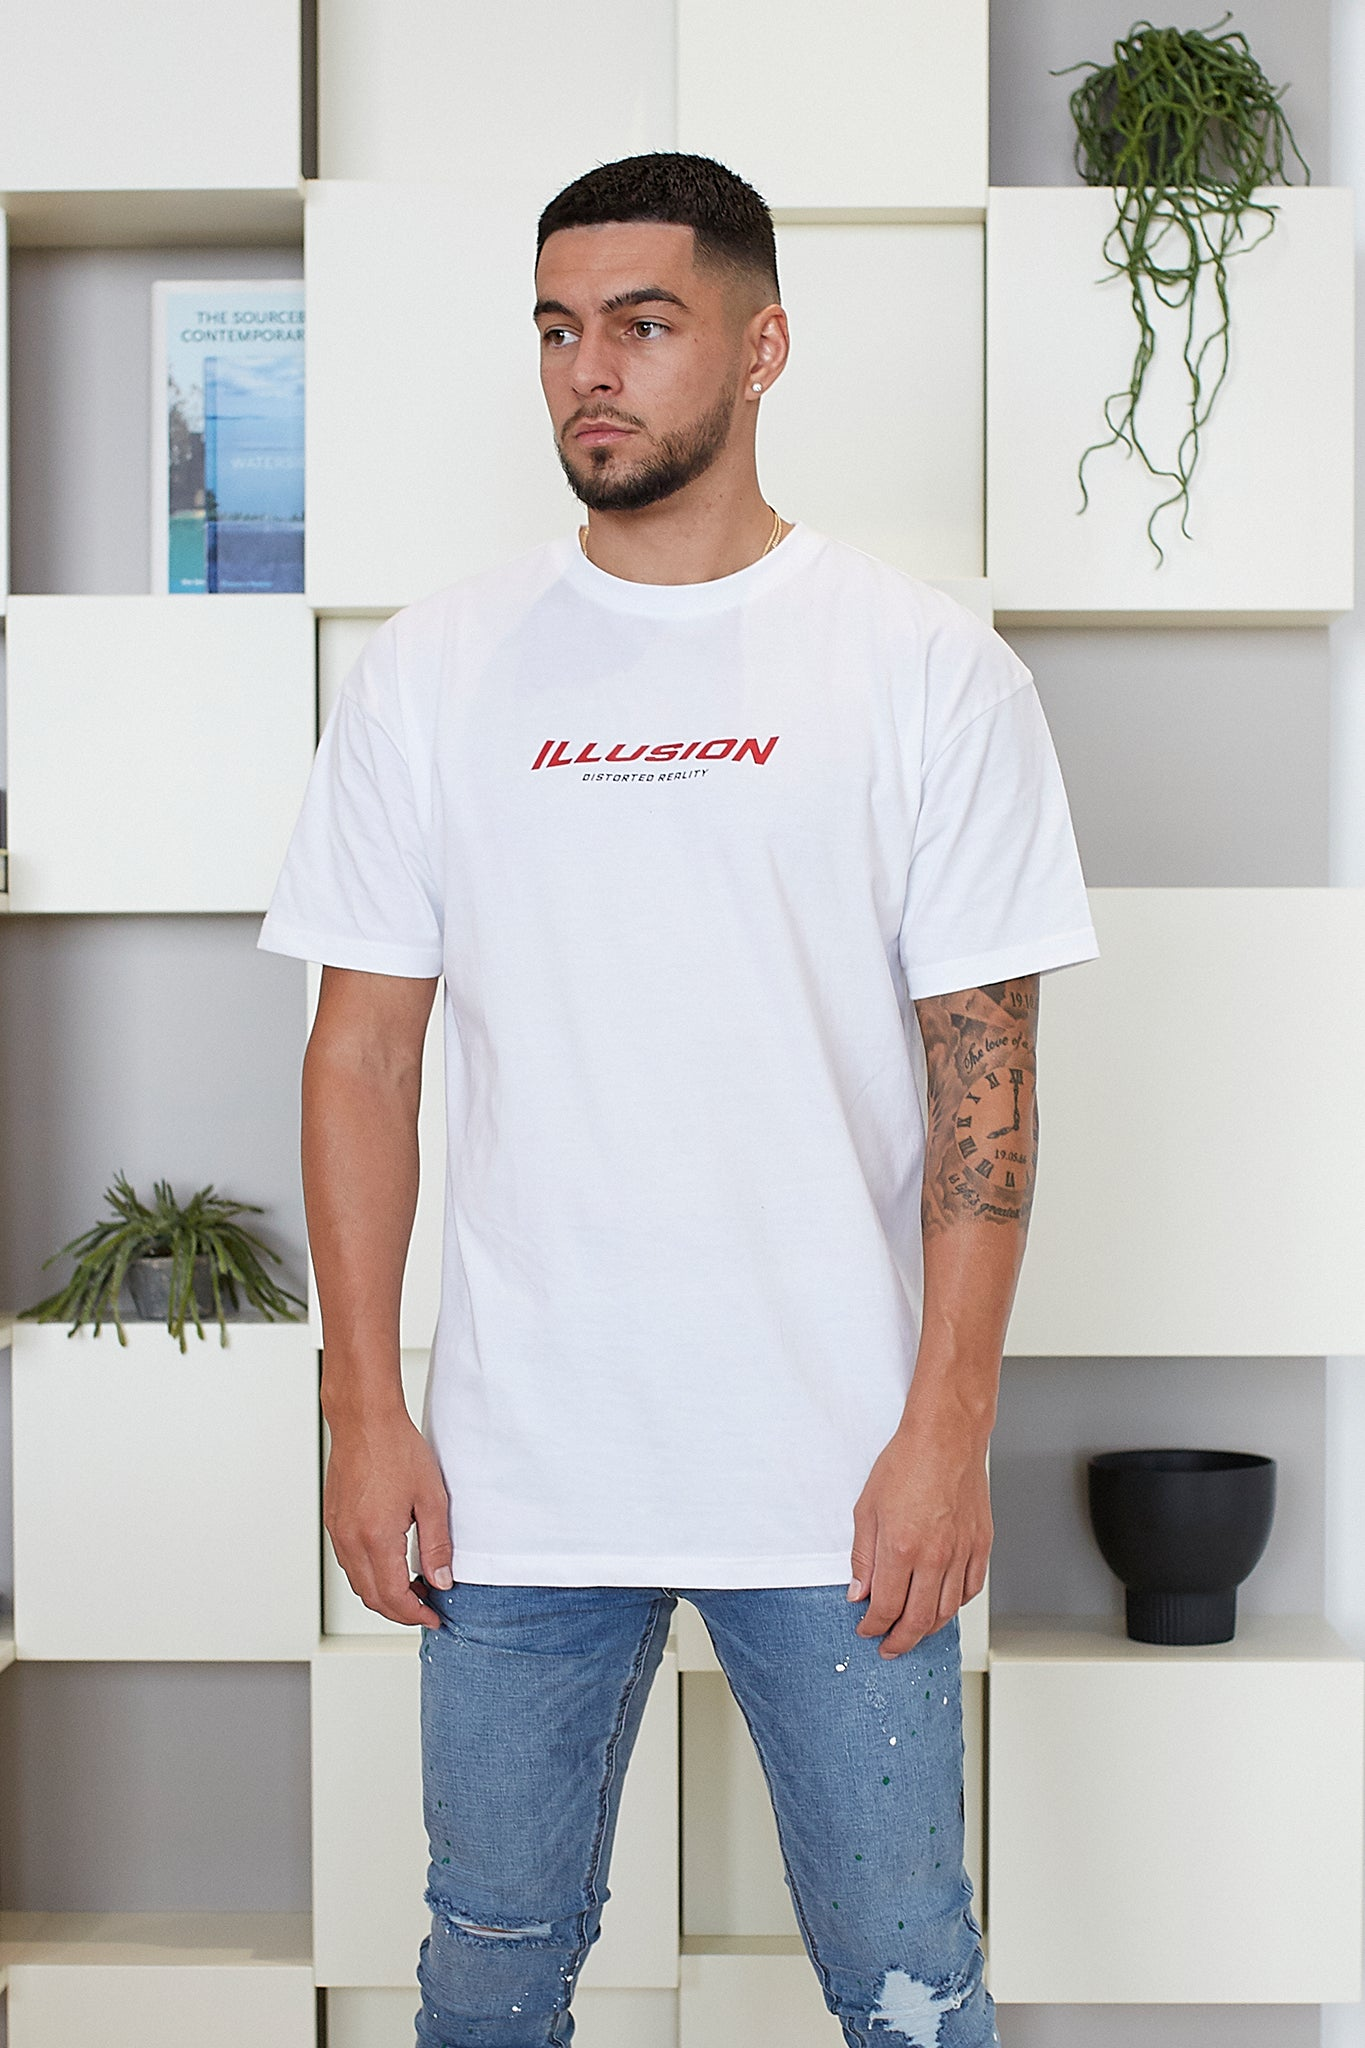 WHITE DISTORTED REALITY T-SHIRT - Illusion Attire